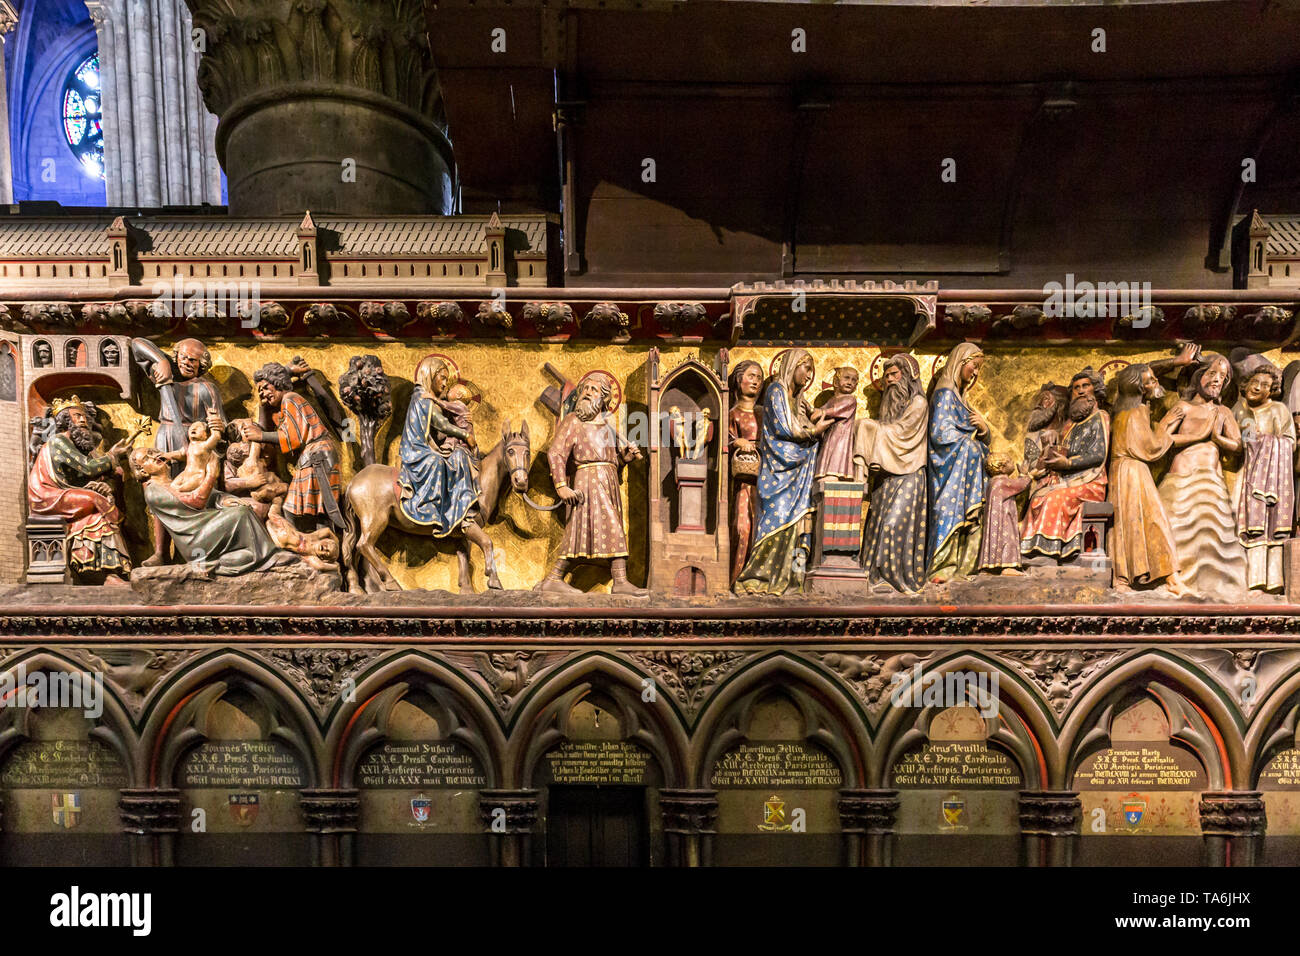 14th Century wood reliefs in Notre-Dame de Paris Cathedral telling the story of the life of Jesus Christ. Memorials to various Cardinals are shown - Stock Image